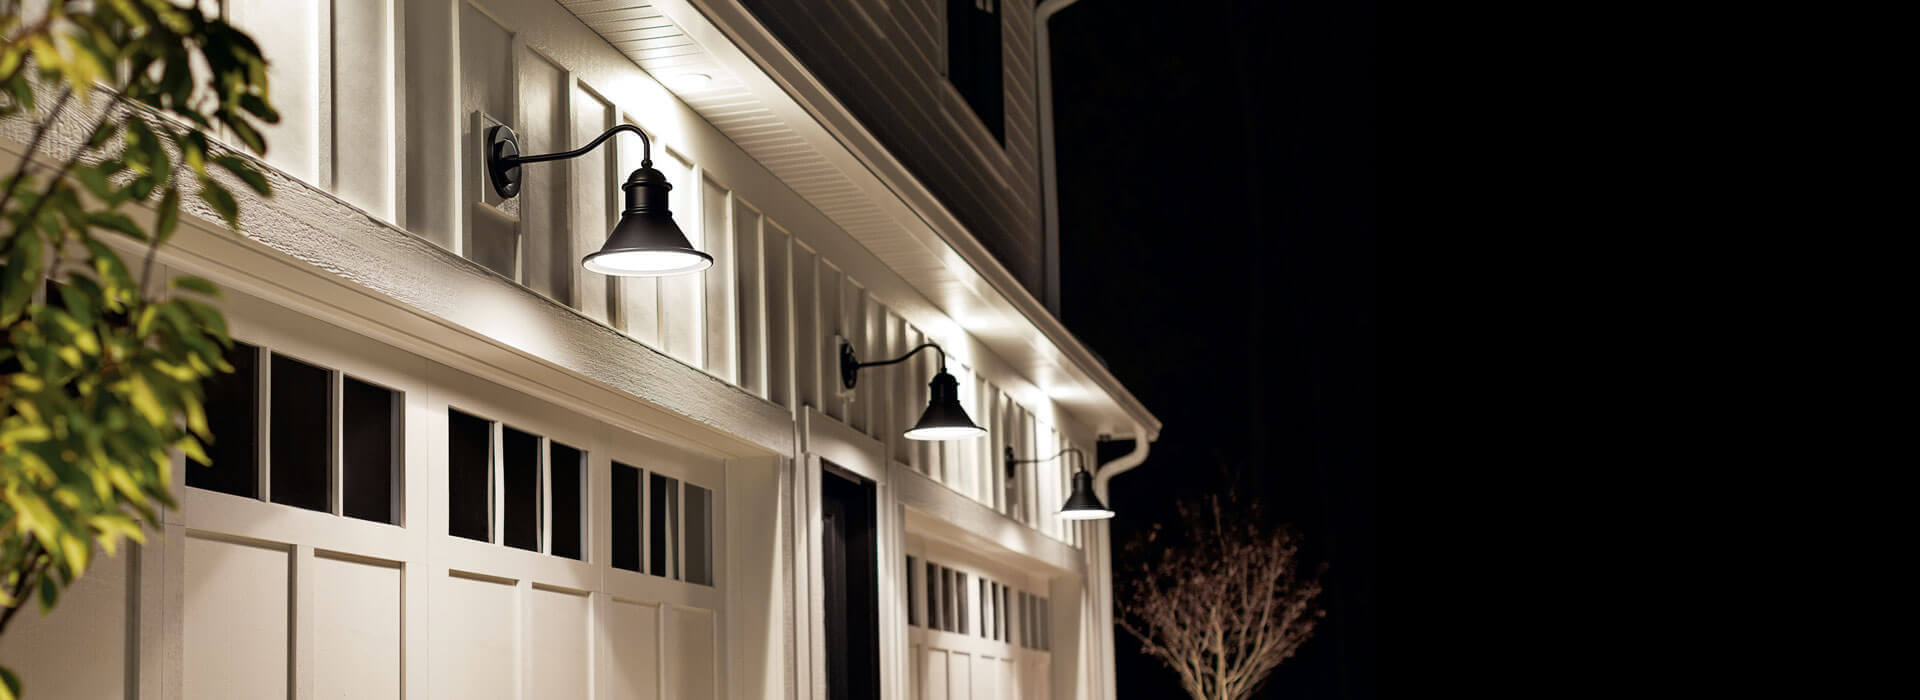 Outdoor Lighting | Kichler Lighting on colonial lighting fixtures, aluminum outdoor lighting, colonial exterior lighting, colonial reproduction outdoor lighting, colonial outdoor furniture, colonial period lighting, colonial landscape lighting, outdoor sconce lighting, colonial brass outdoor lighting, colonial vanity lighting, antique brass outdoor lighting, colonial porch lights, colonial lantern lighting, colonial floor lamps, antique copper outdoor lighting, colonial style lighting, colonial island lighting, williamsburg outdoor lighting, colonial wall sconces, colonial pendant lighting,